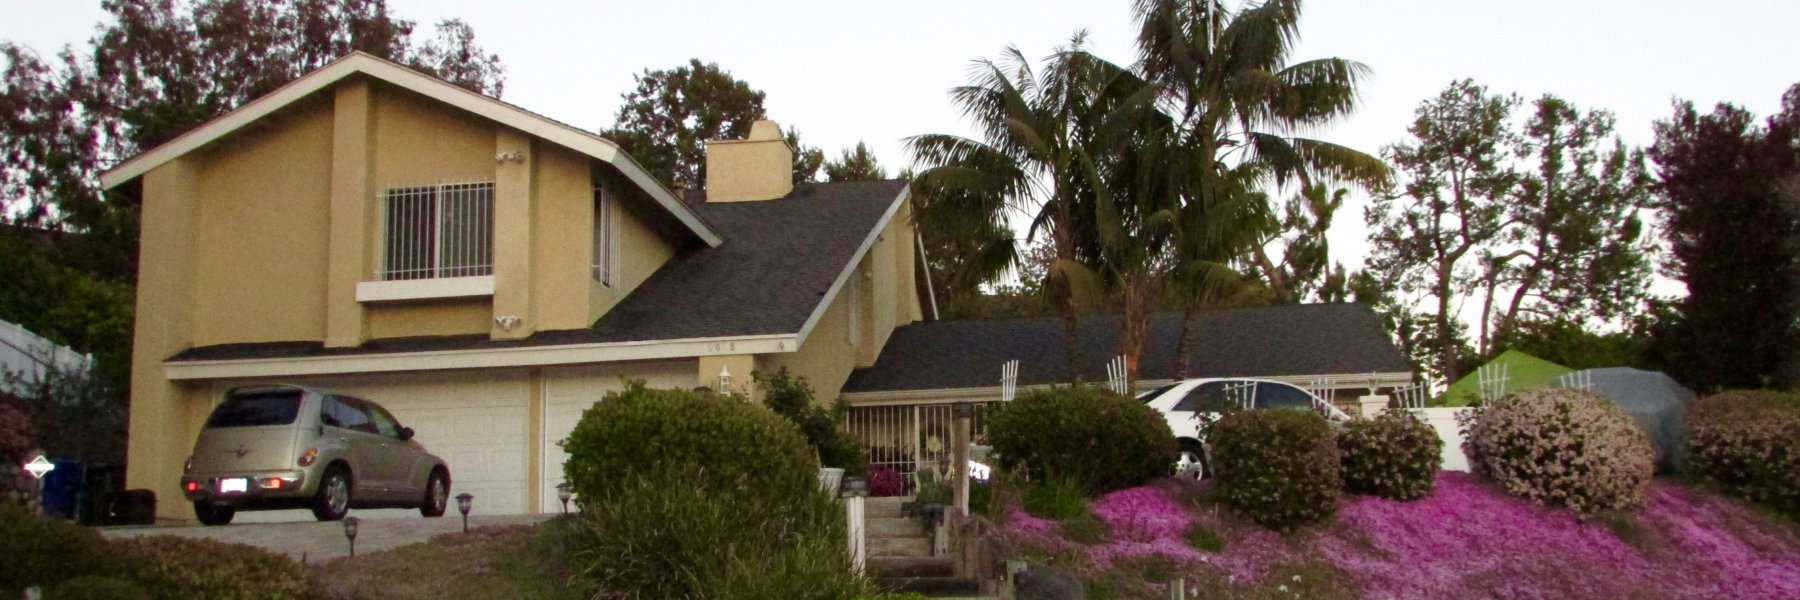 Henie Hills is a community of homes in Oceanside California